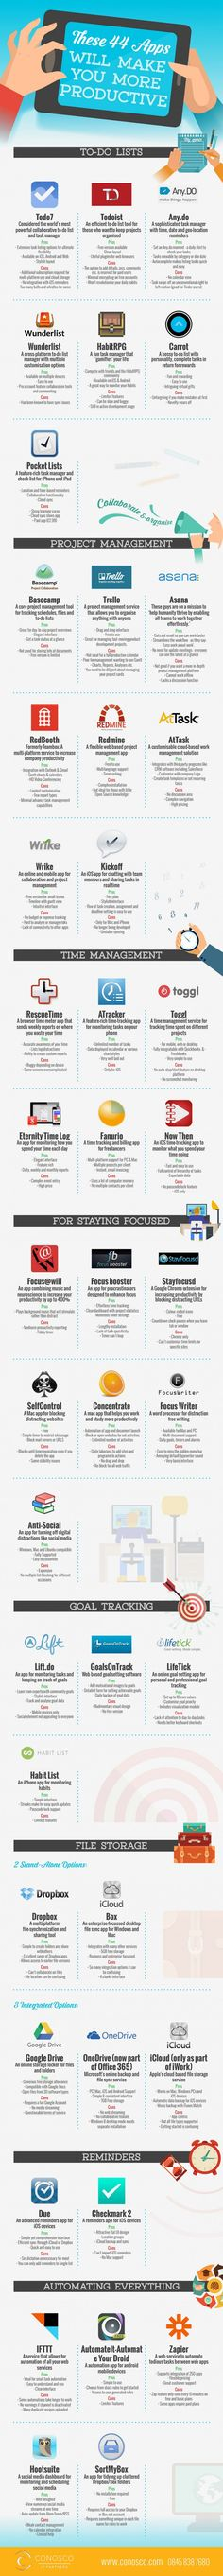 44 apps for productivity with pros & cons. Find the ones that work best for your lifestyle